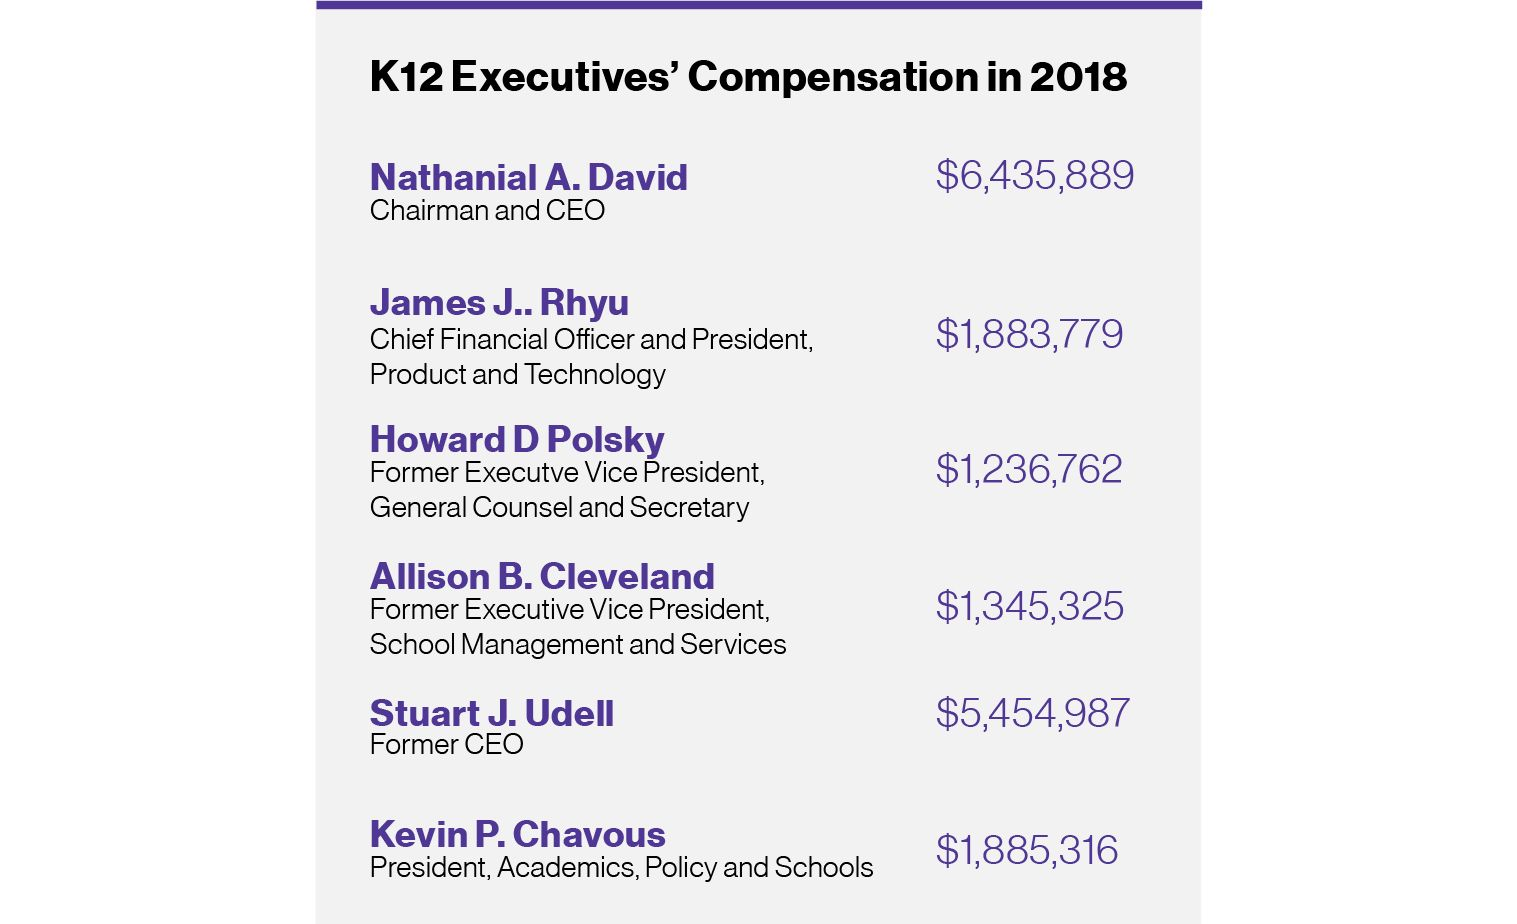 Graphic: K12 Inc. Executives' Compensation in 2018, showing several executives all making over $1 million.